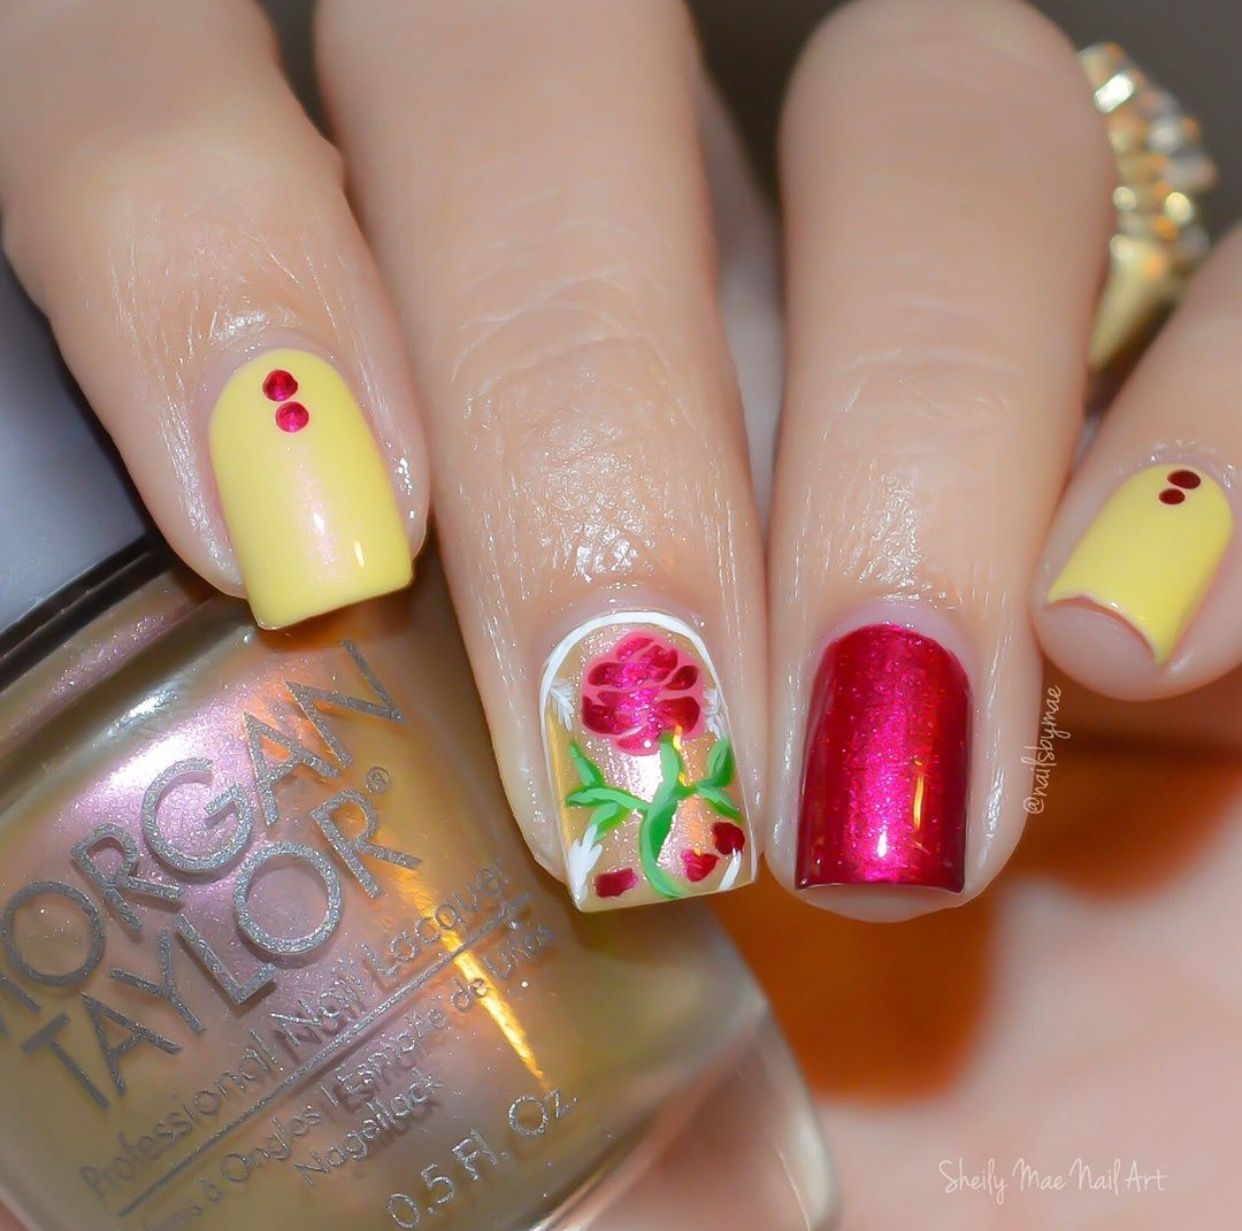 Beauty and the beast nails | Disney nails | Pinterest | Beast ...